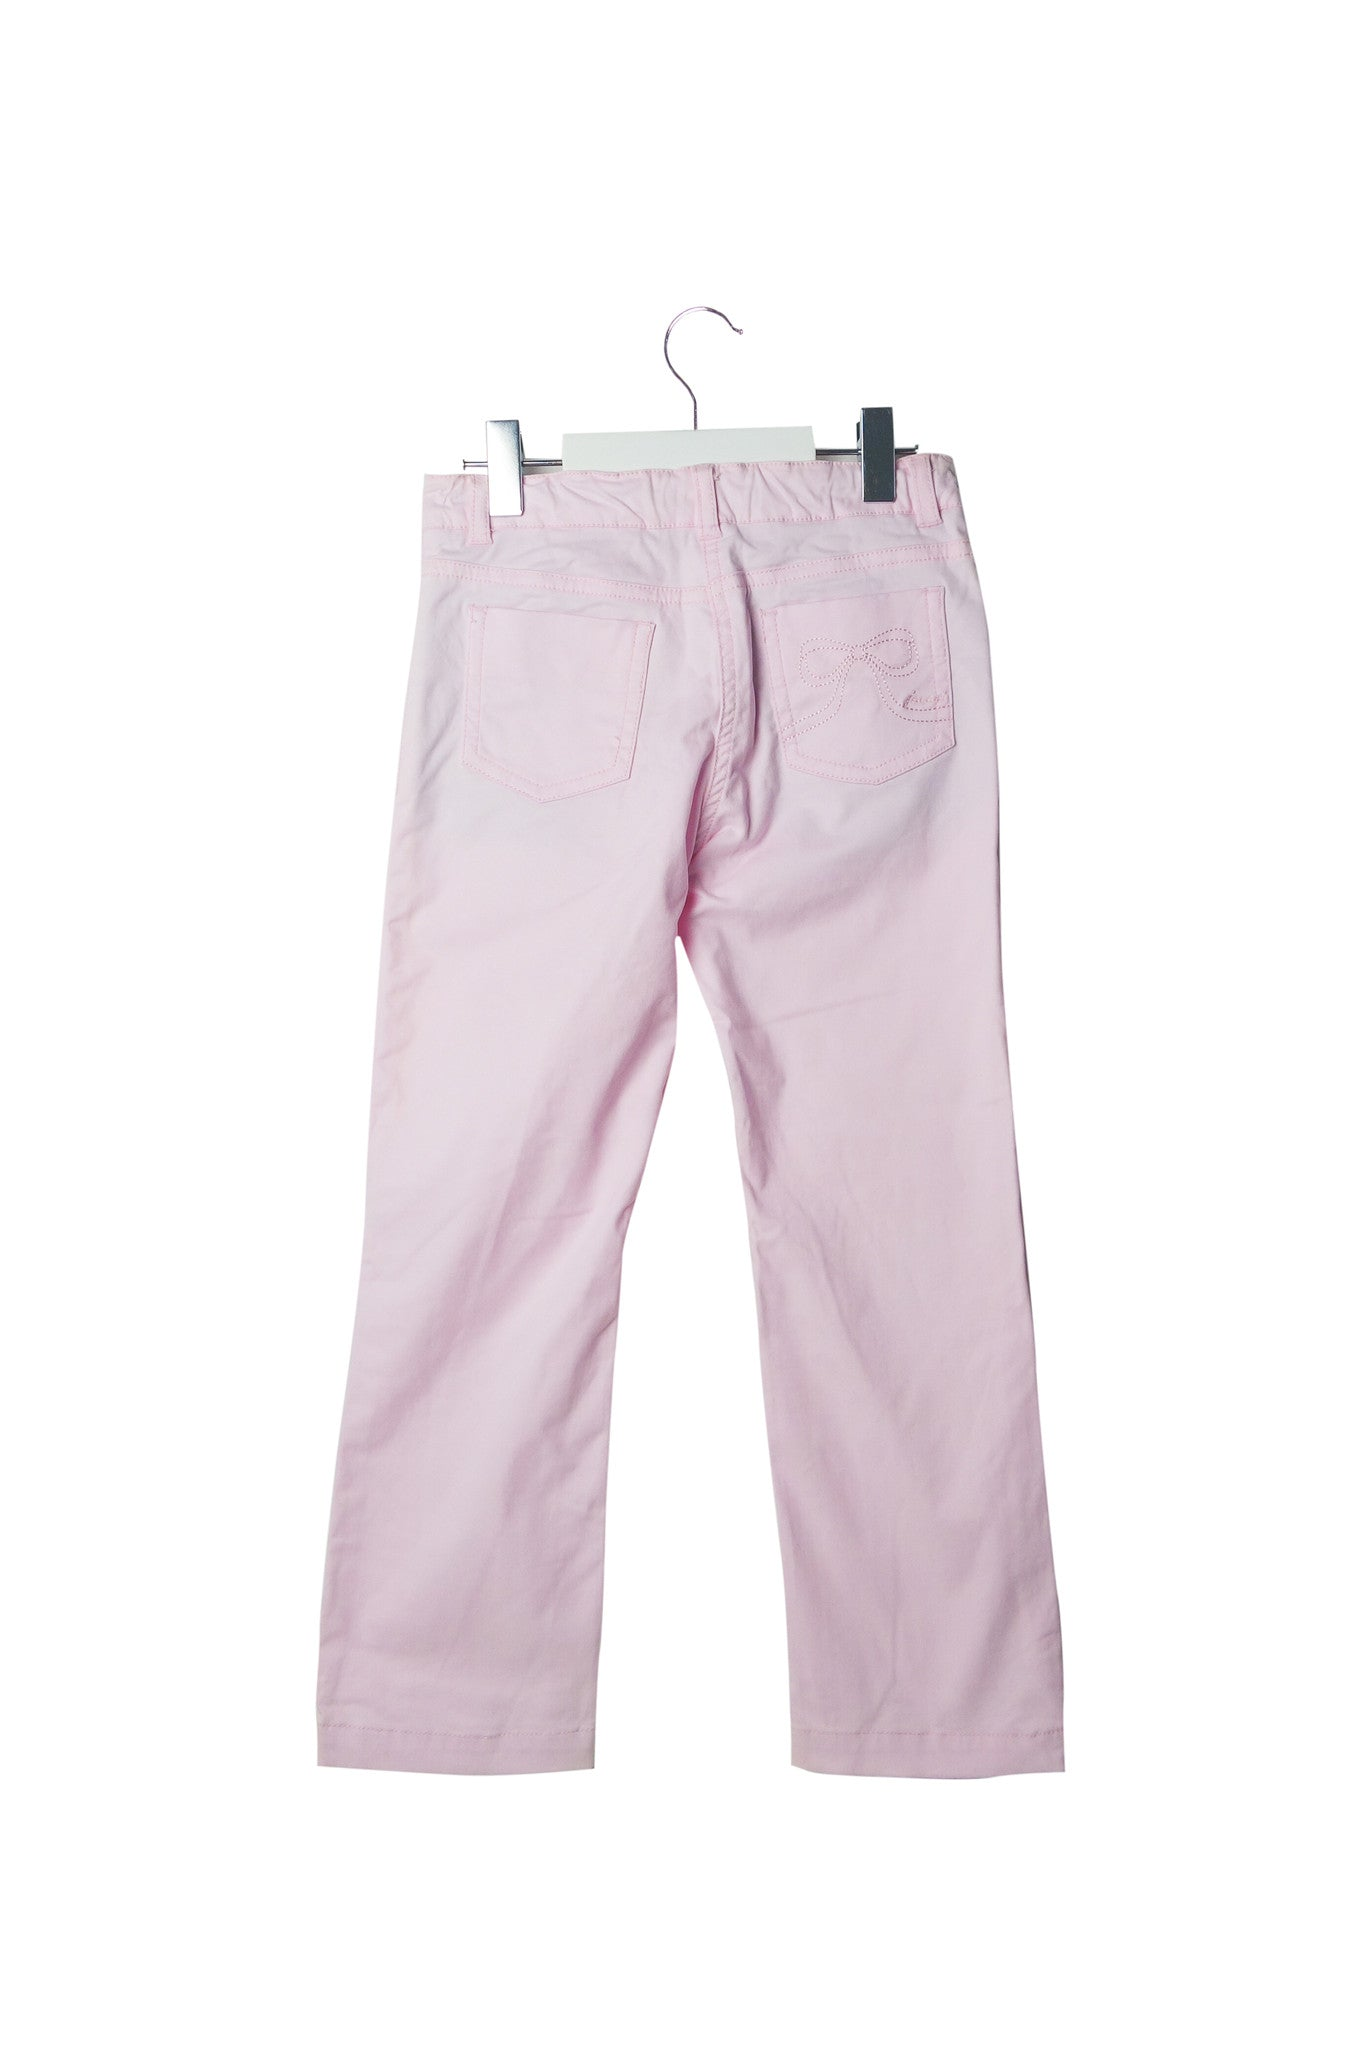 10003186 Jacadi Kids~Jeans 5T at Retykle